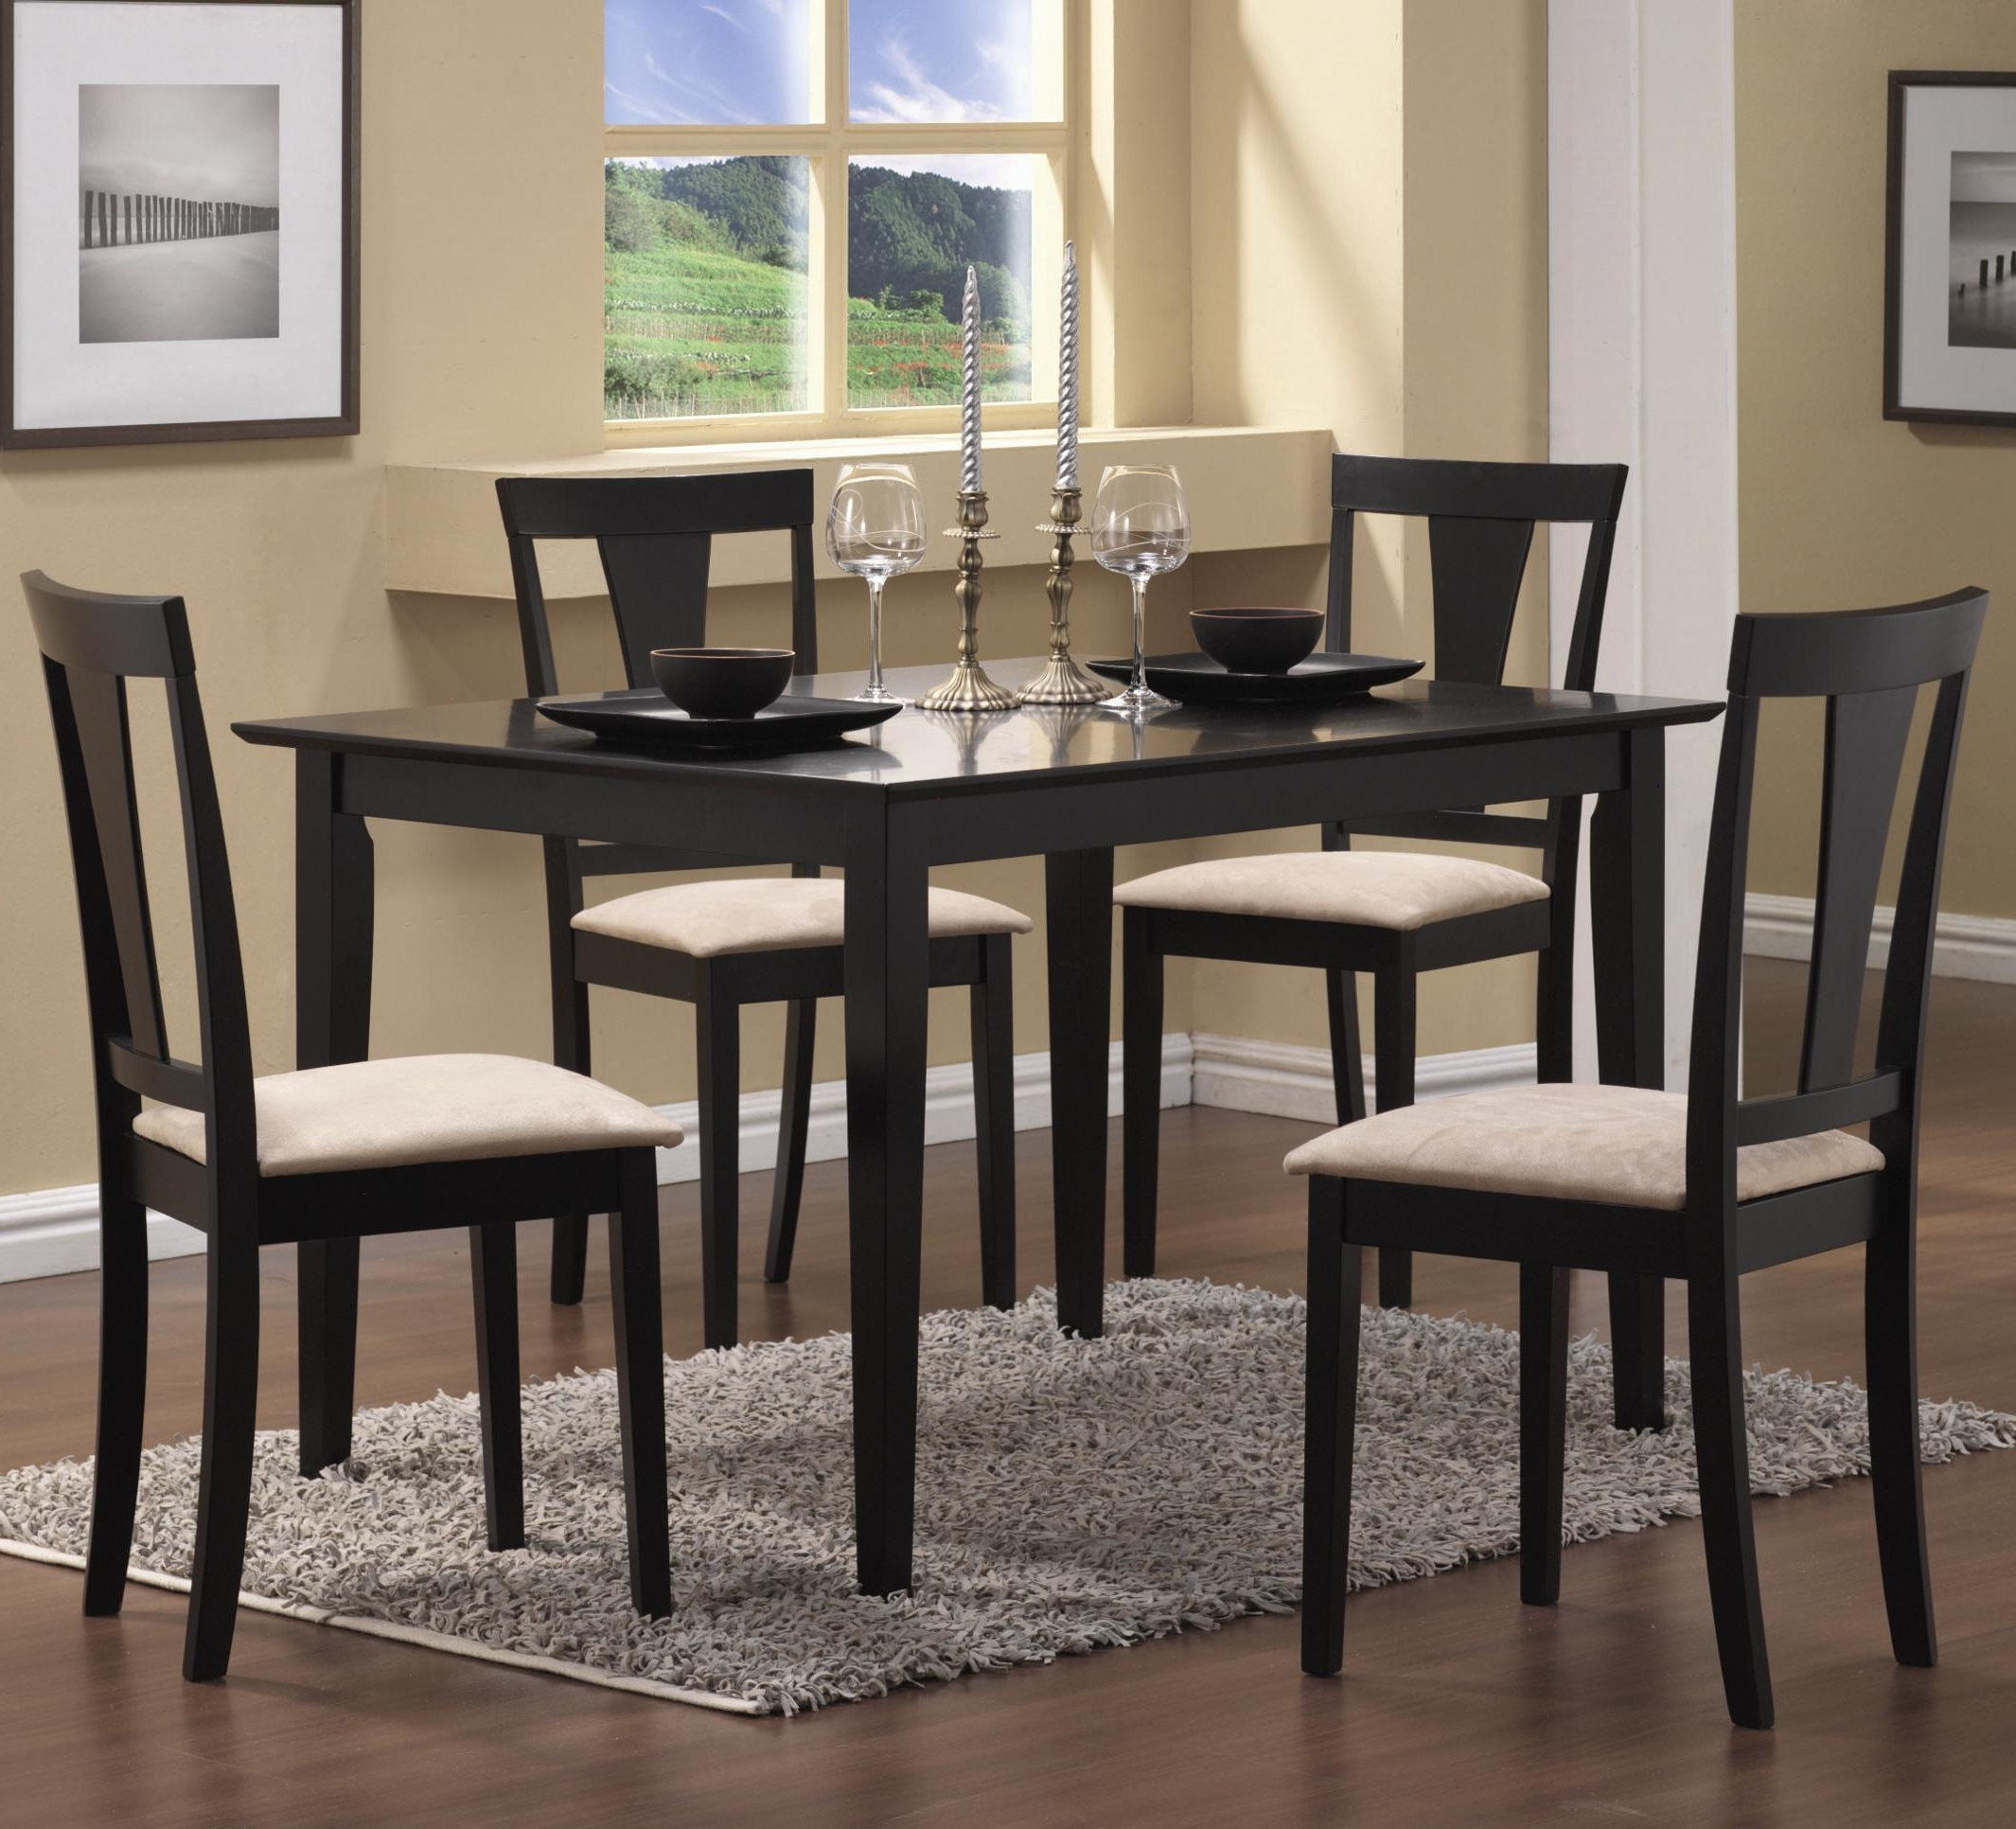 Dining Room Tables And Chairs for Popular Santa Clara Furniture Store, San Jose Furniture Store, Sunnyvale